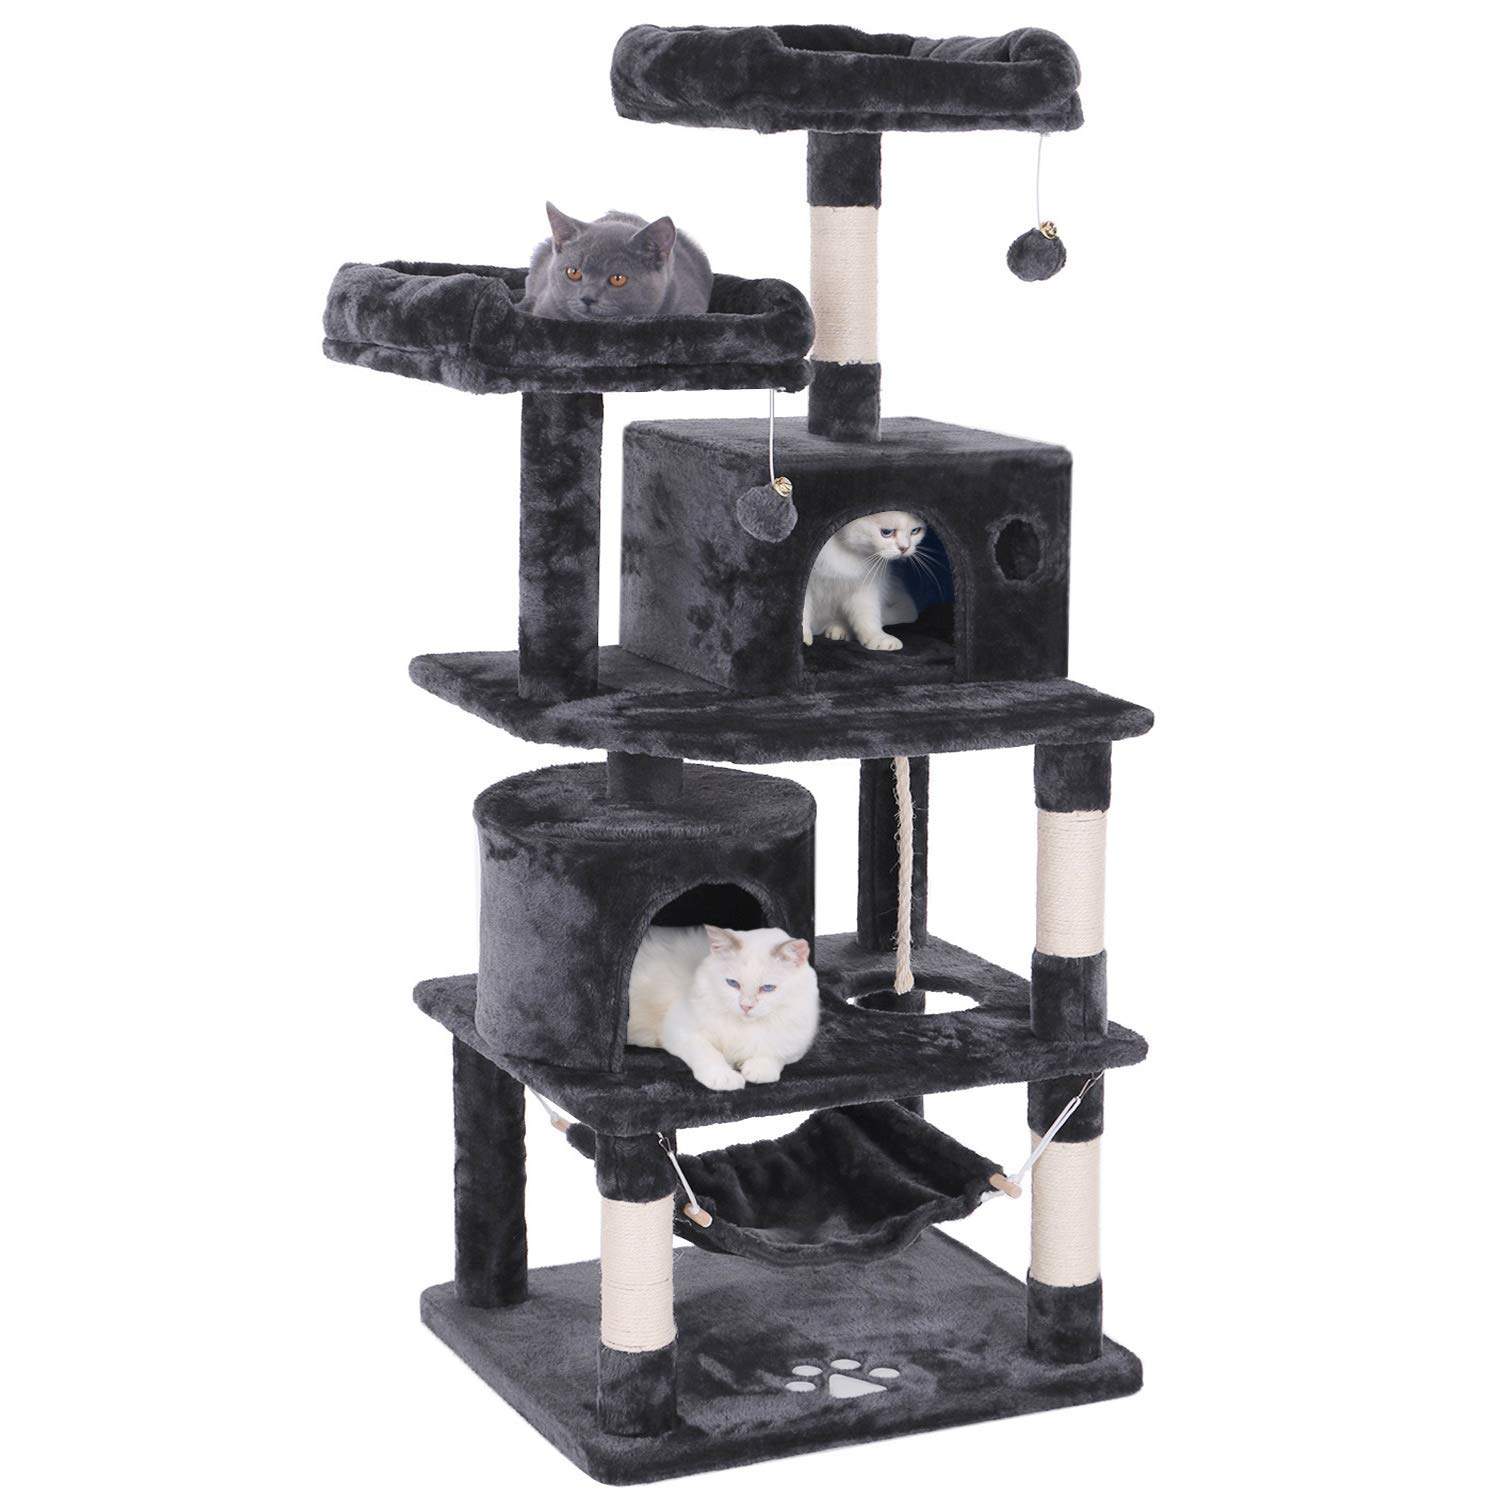 Bewishome 57 Inch Activity Tower Cat Tree